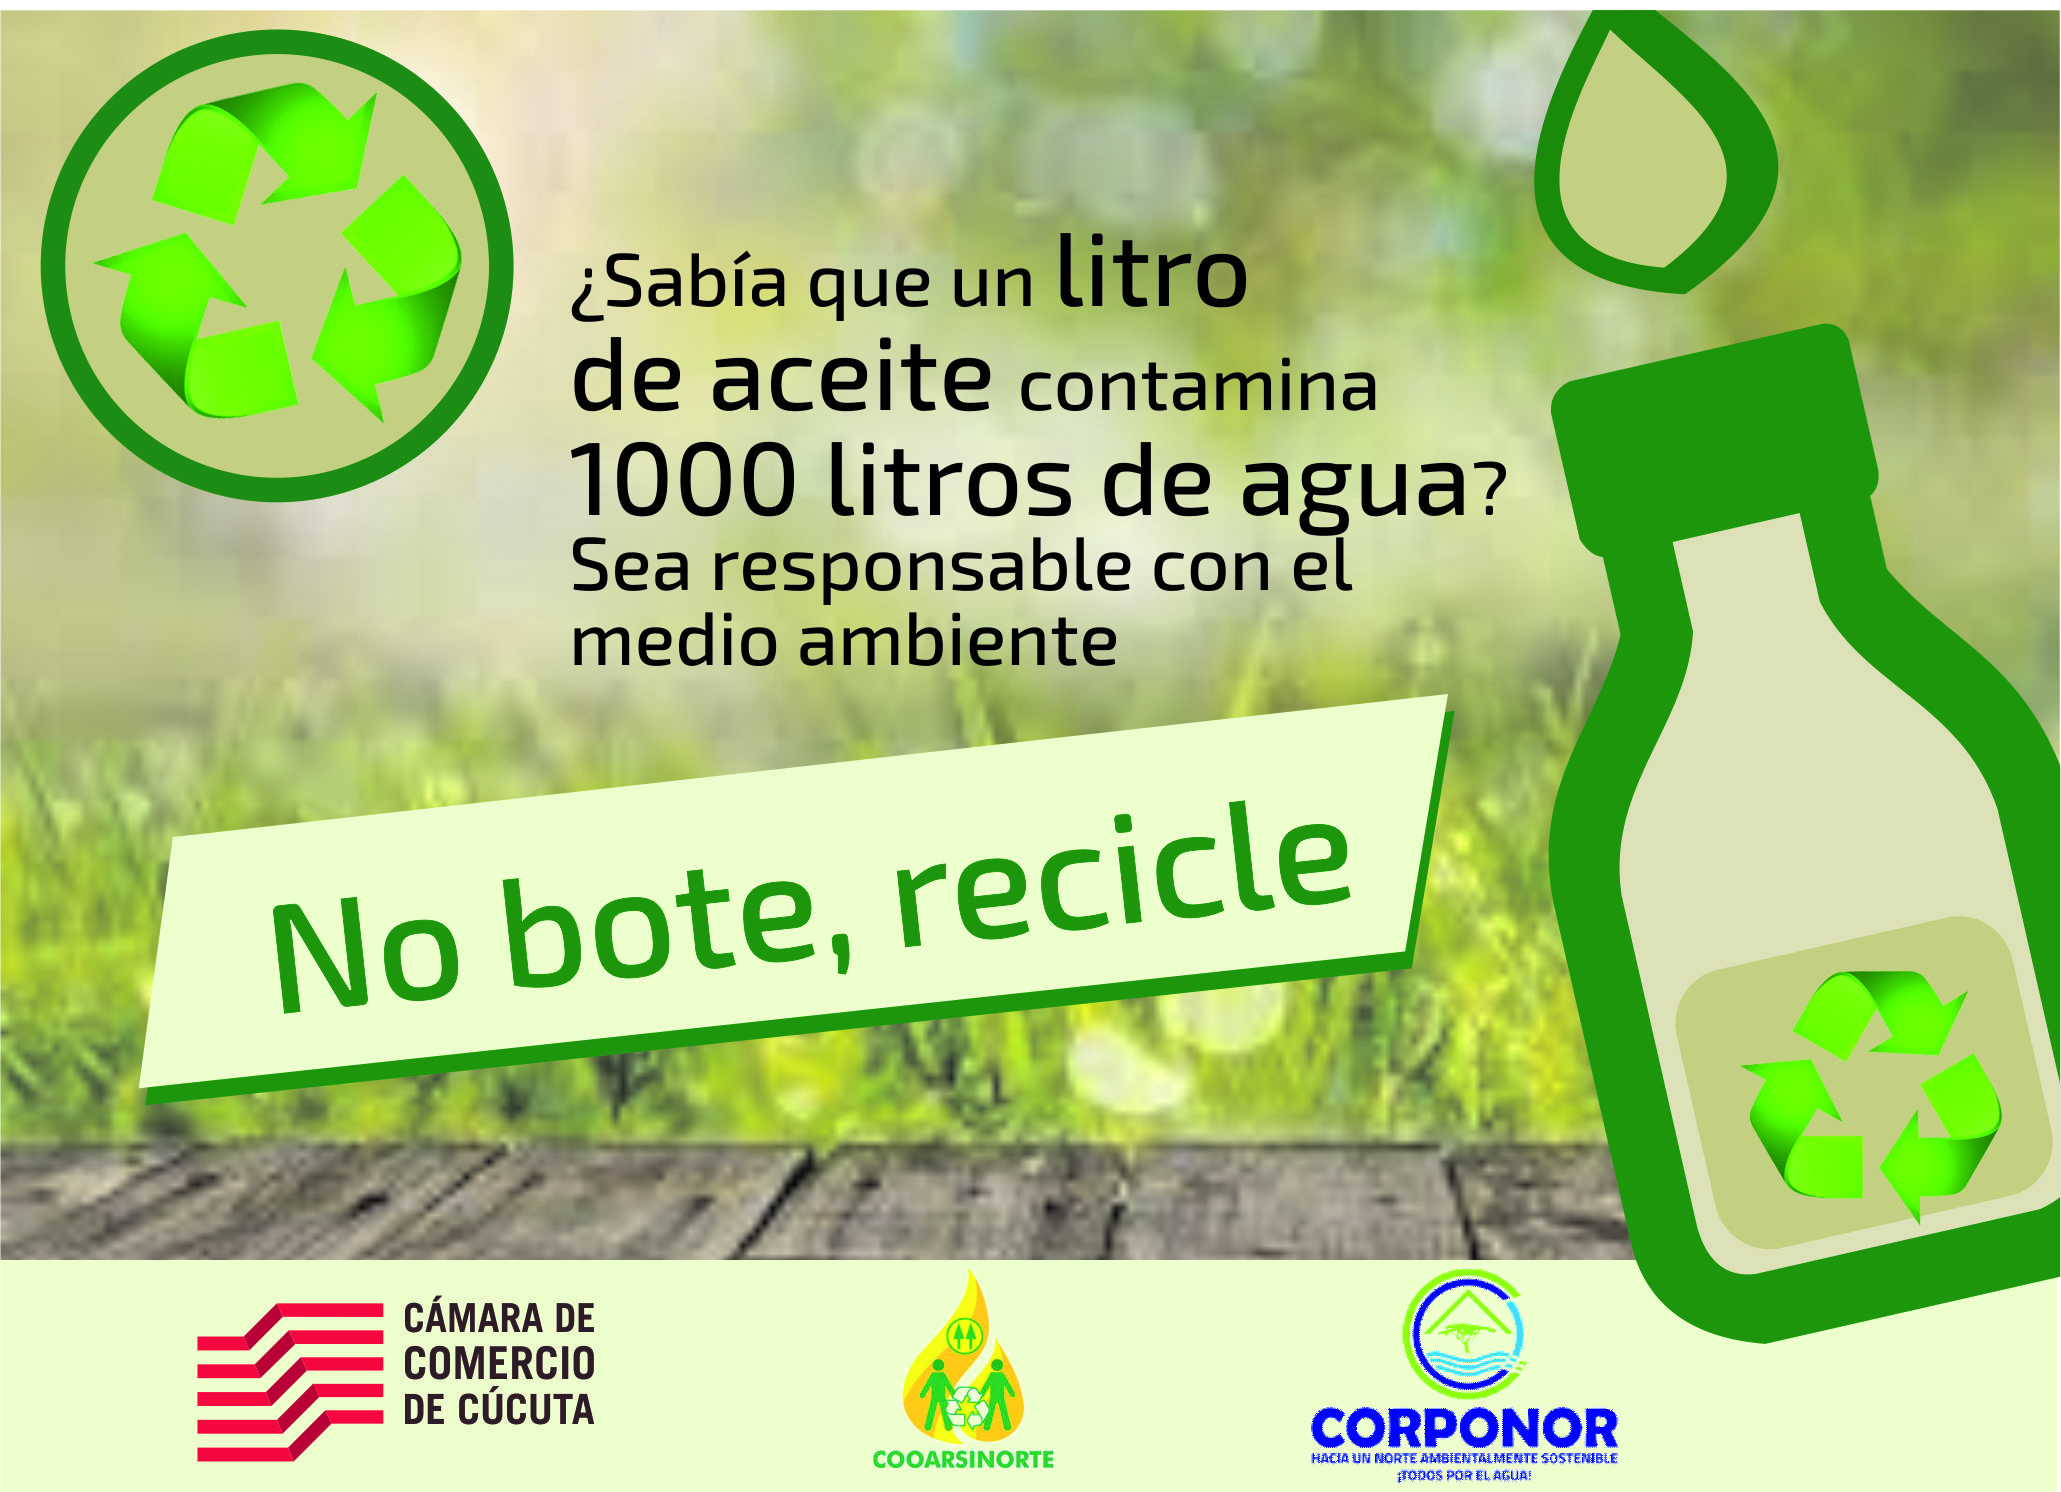 No bote, recicle